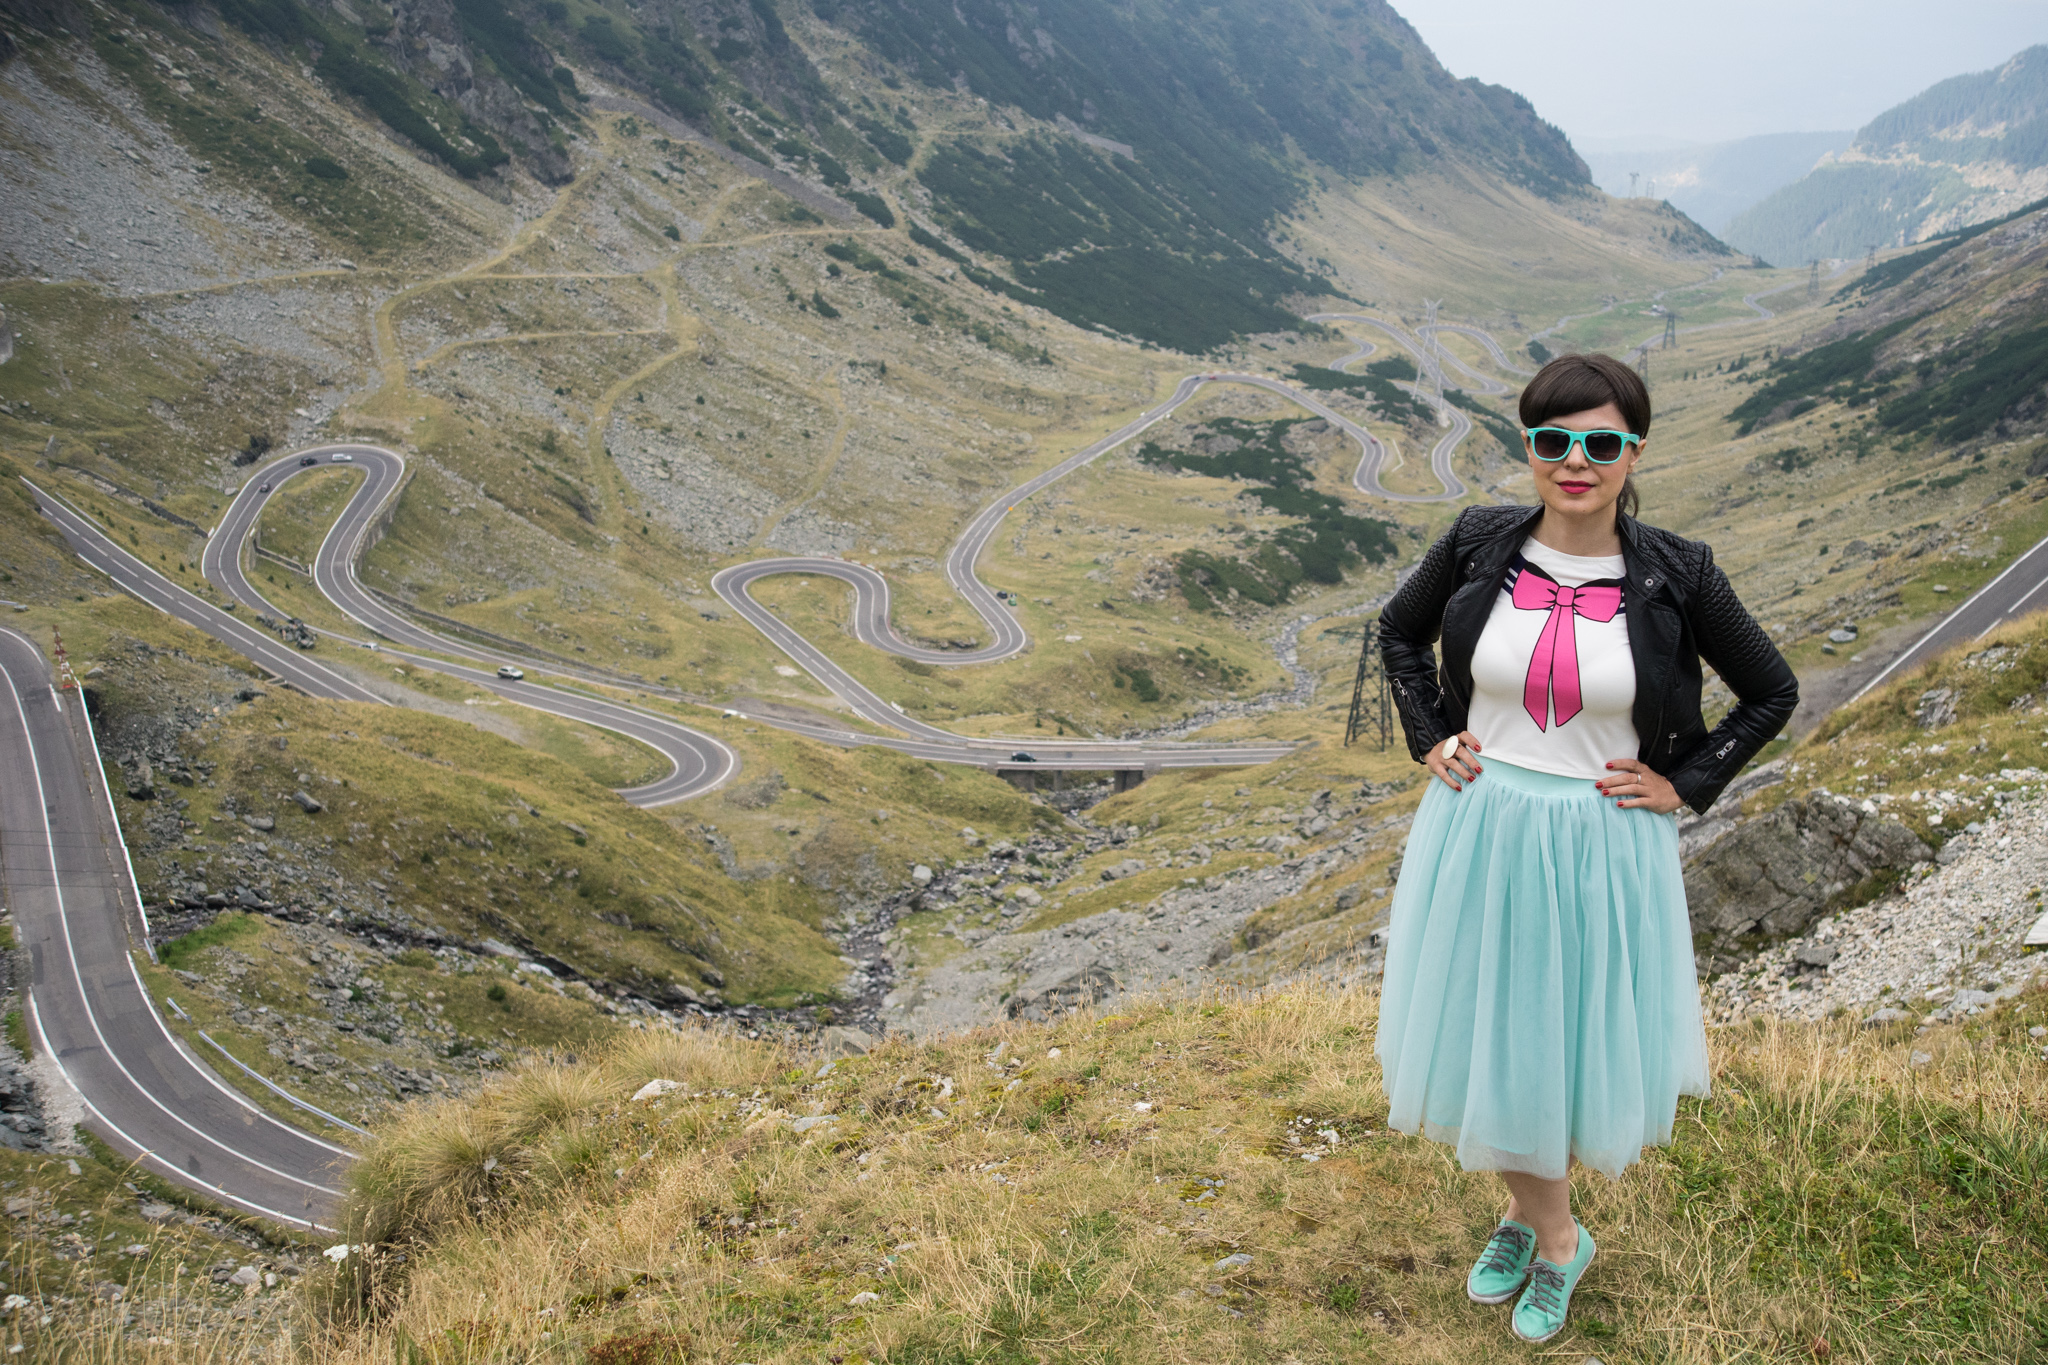 special 30th birthday photo shoot - tutu, bows and colorful balloons koton mint tulle skirt mint sneakers h&m crop top pink bow new yorker leather jacket rockish vibes rock brasov transfagarasan romania